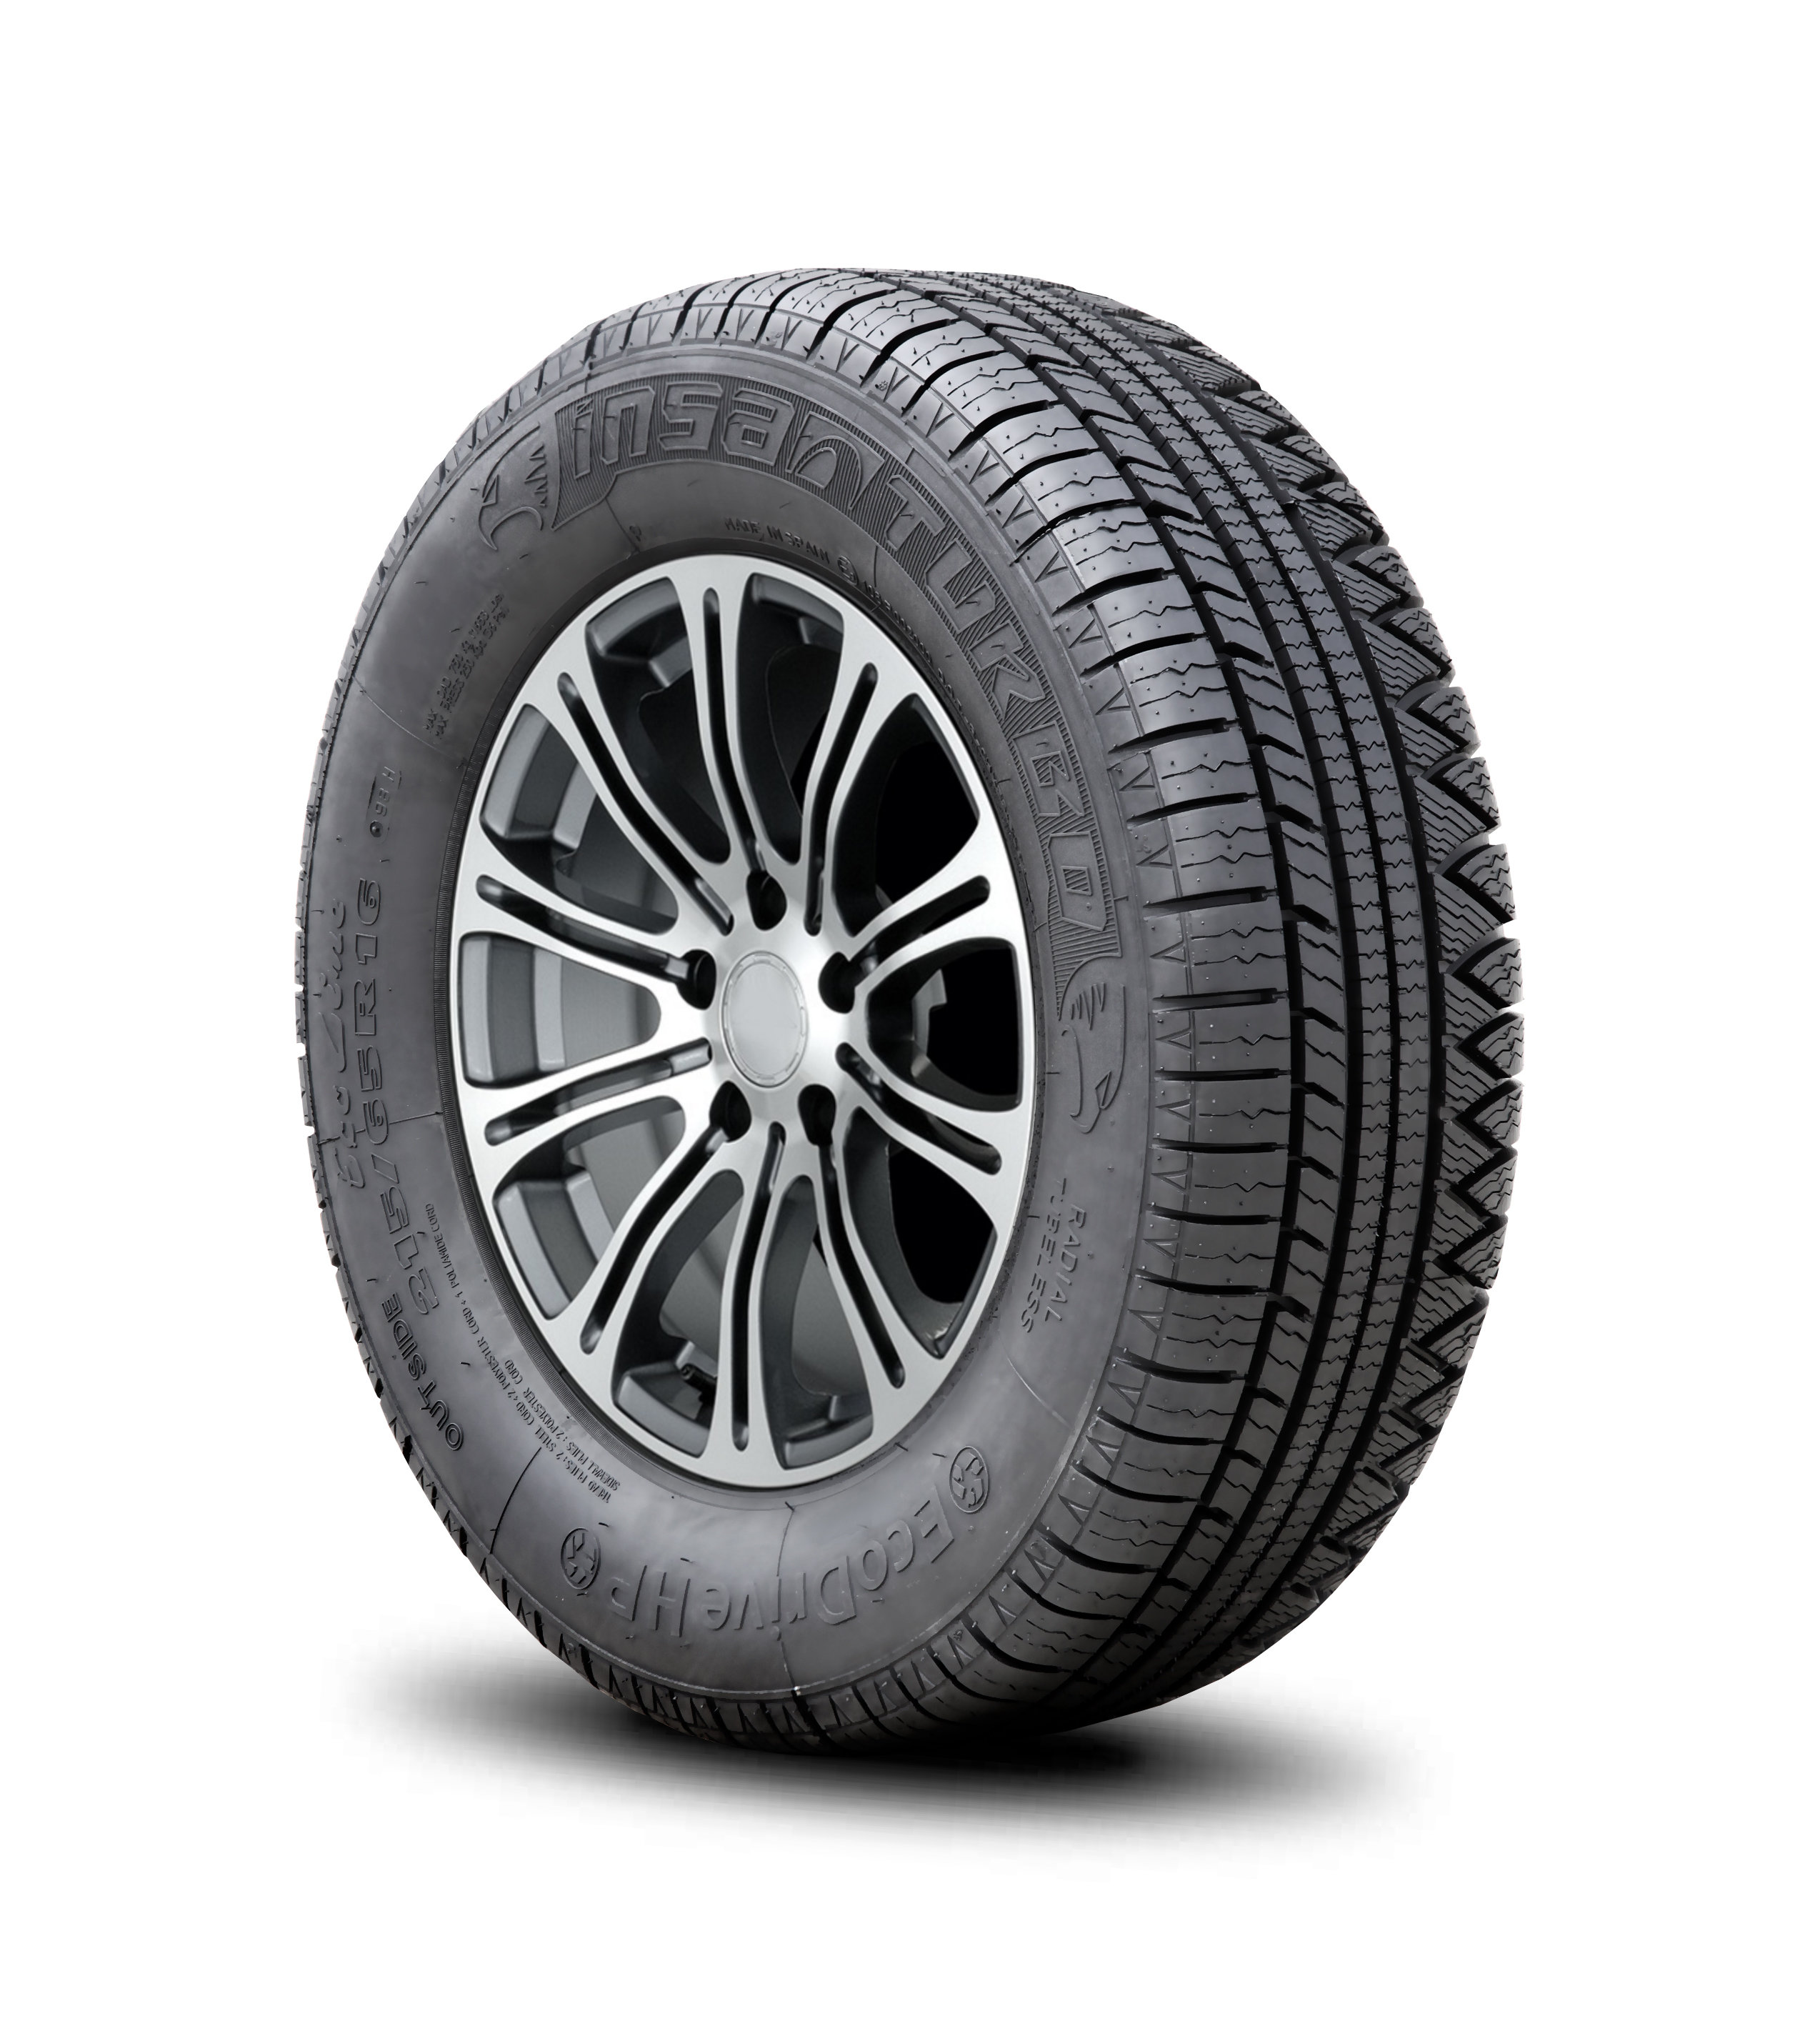 INSA TURBO ECODRIVE ALL SEASON 215/65R16